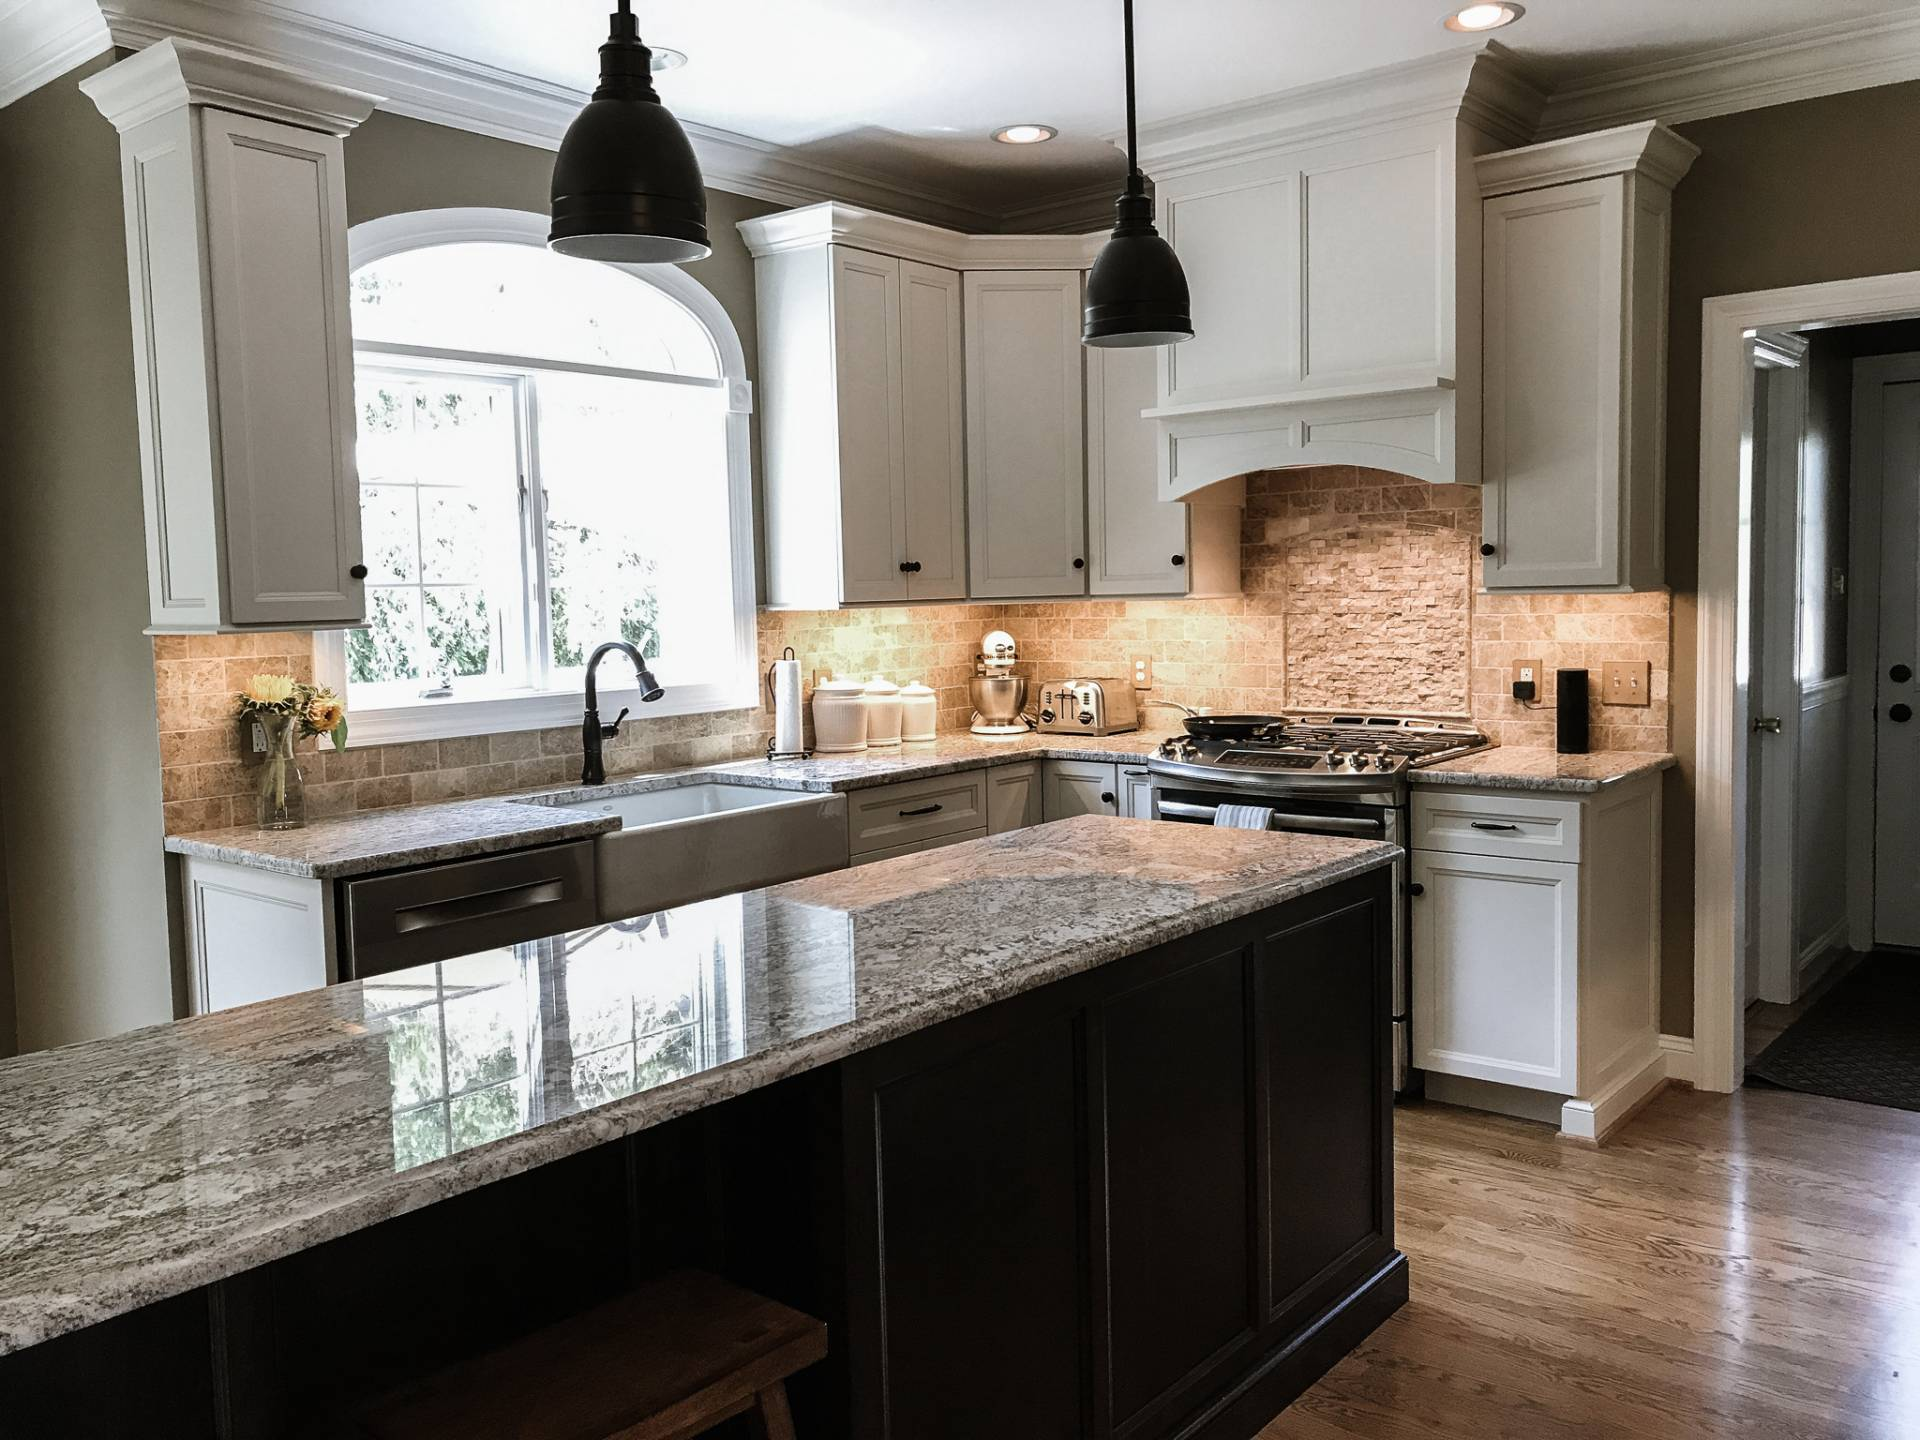 Trending Kitchen Cabinet Colors For 2020 | 5 Cool Cabinet ...